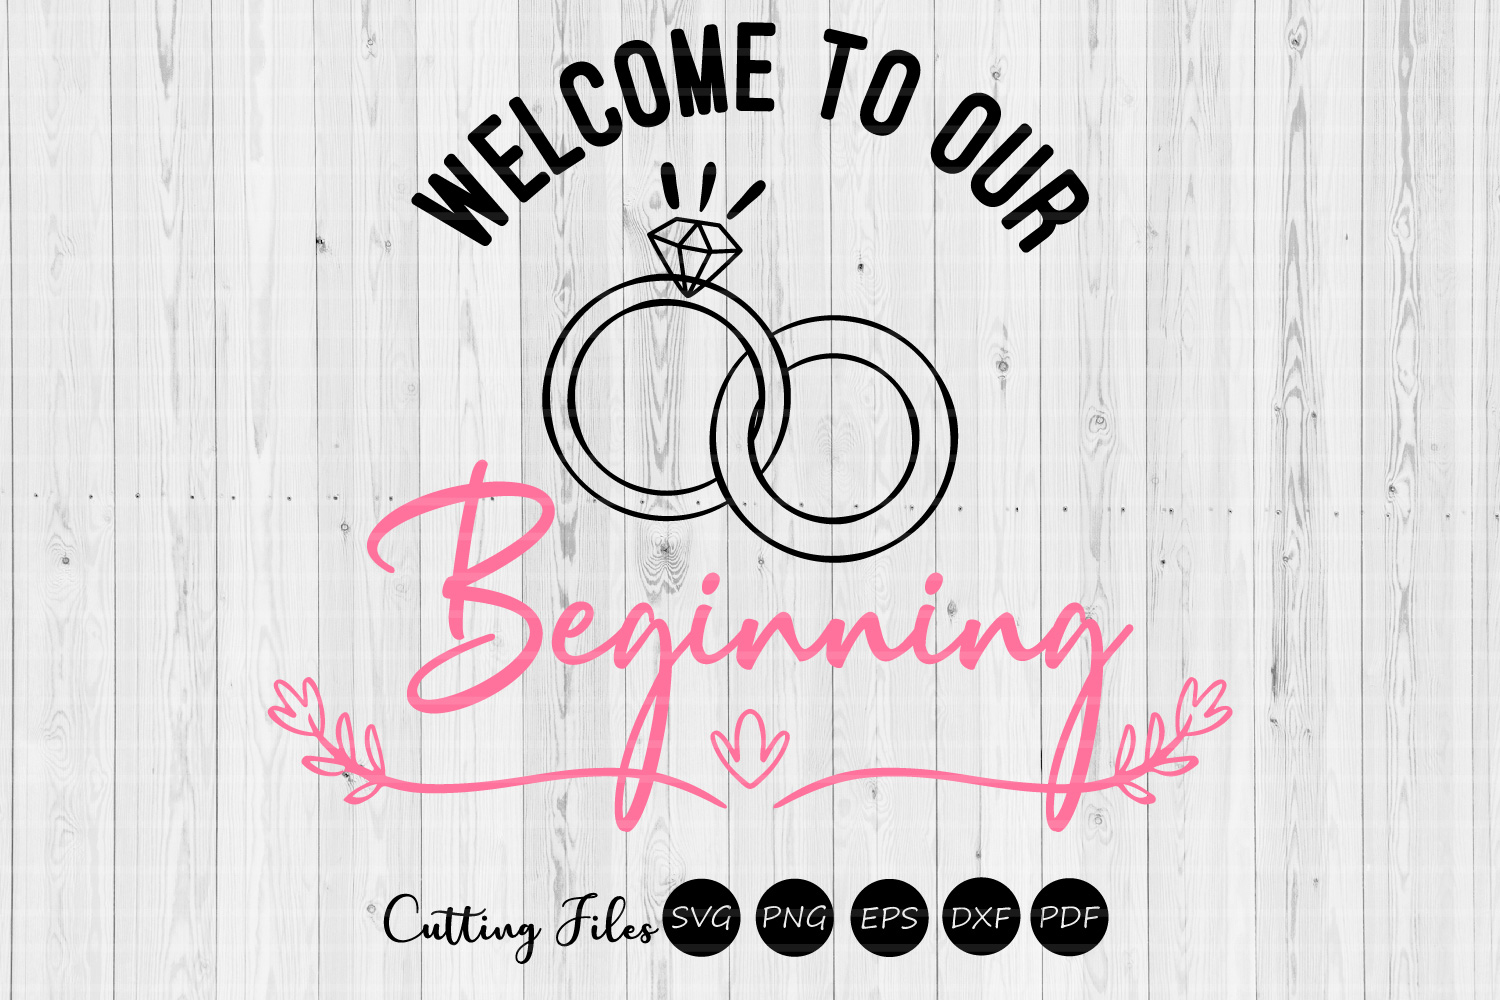 Download Free Welcome To Our Beginning Svg Graphic By Hd Art Workshop for Cricut Explore, Silhouette and other cutting machines.